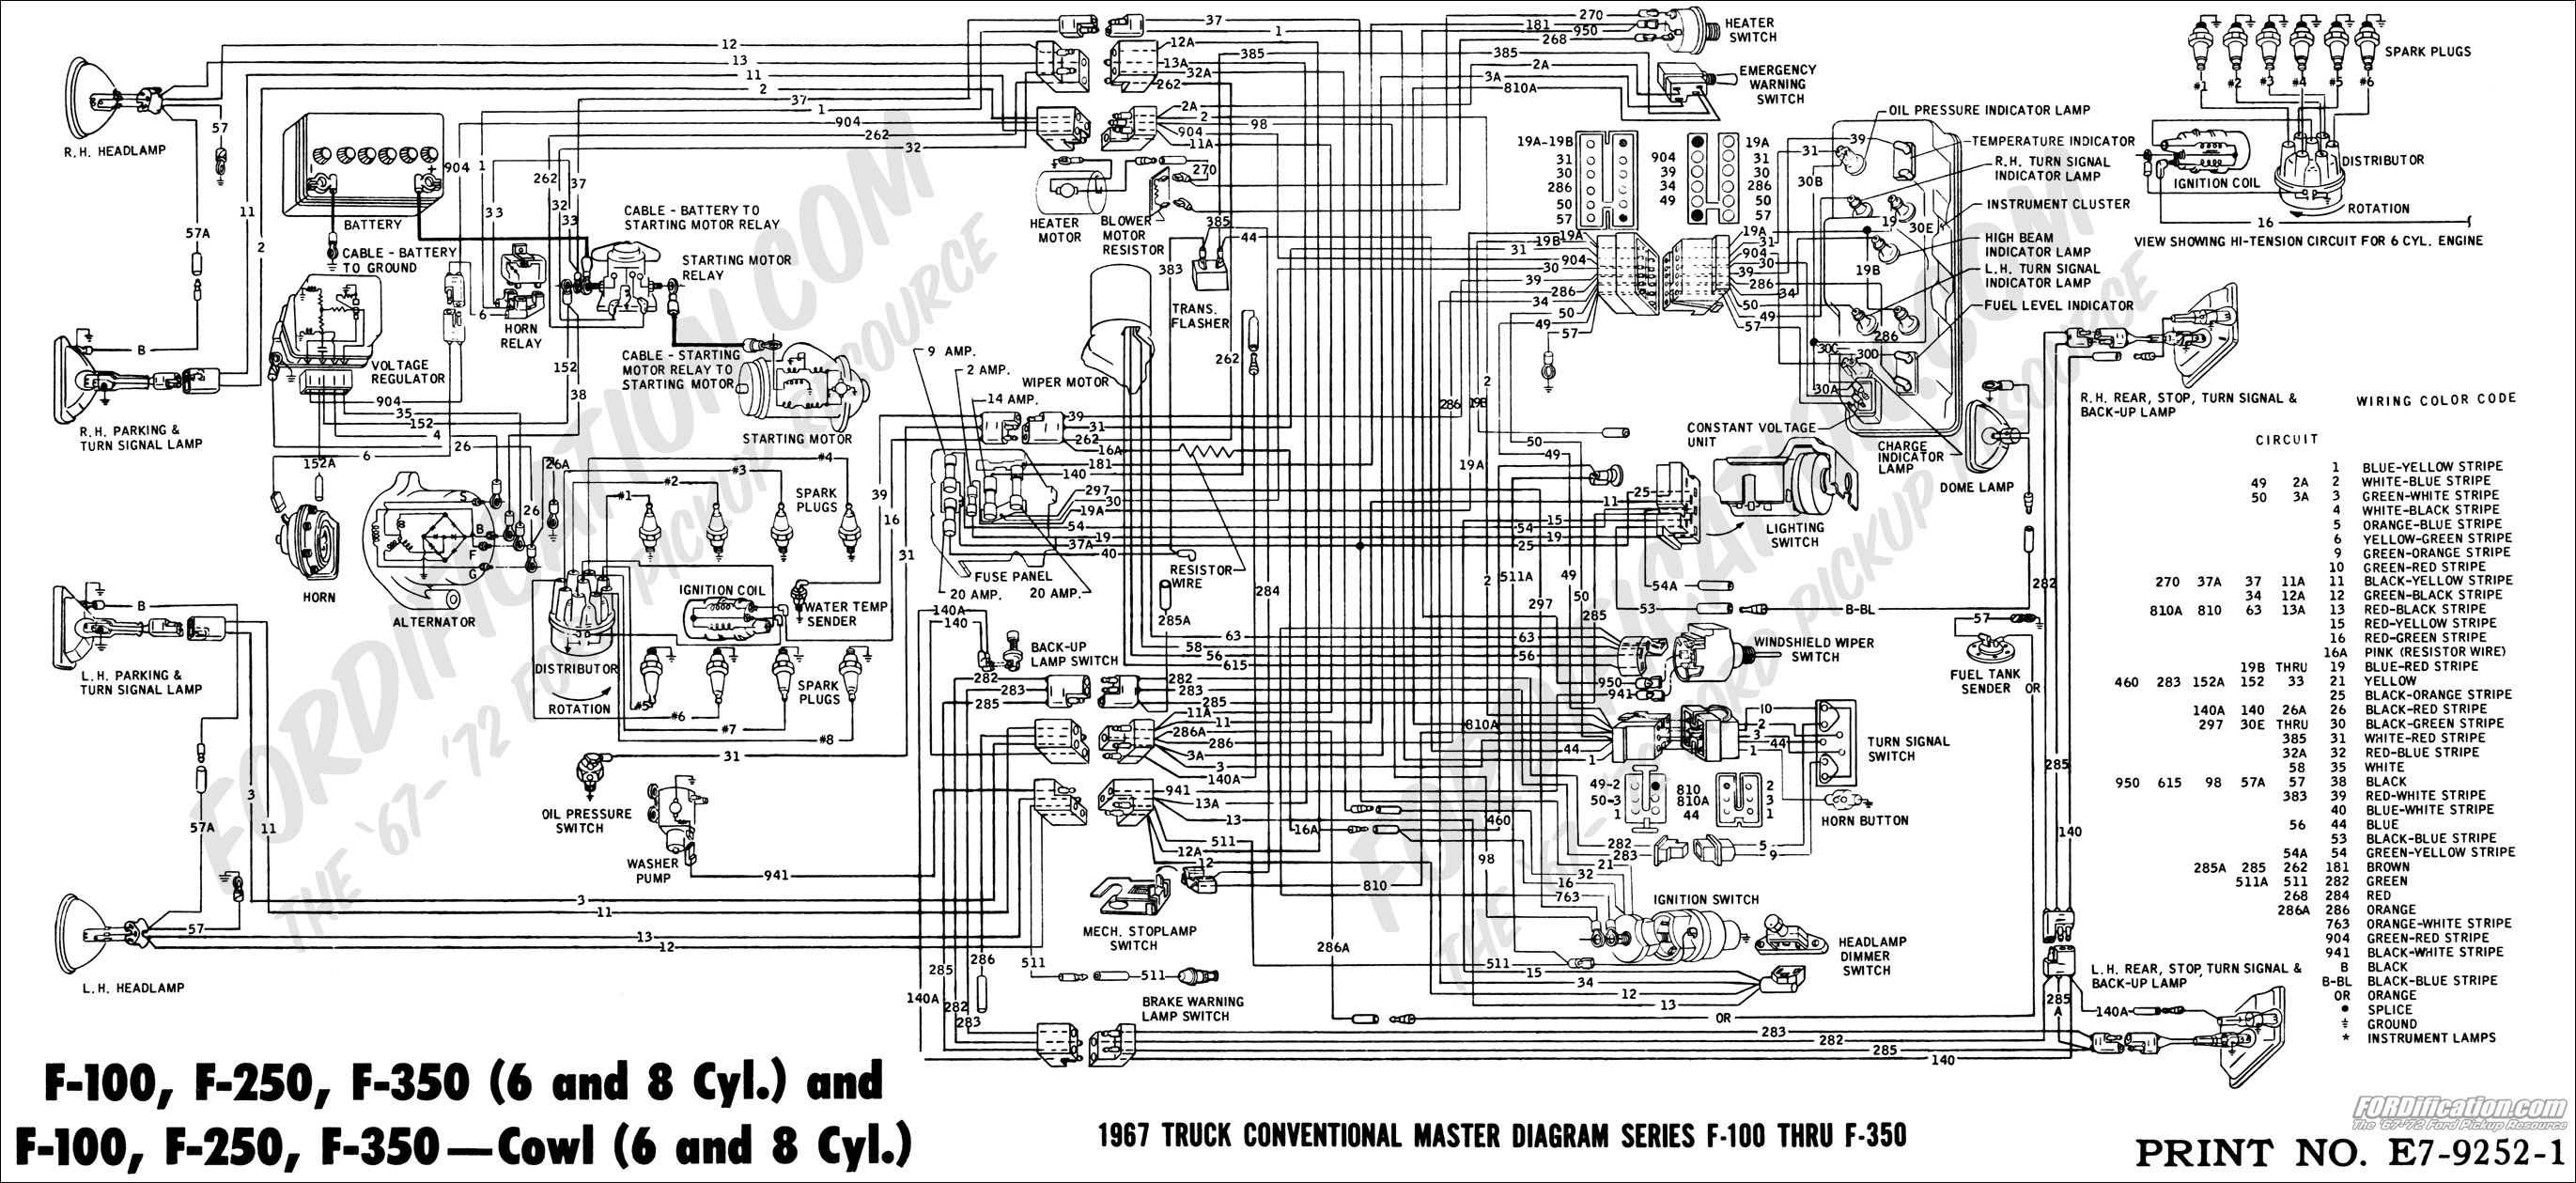 [GJFJ_338]  Ford Truck Technical Drawings and Schematics - Section H - Wiring Diagrams | 1988 Ford E 350 Wiring Diagram |  | FORDification.com